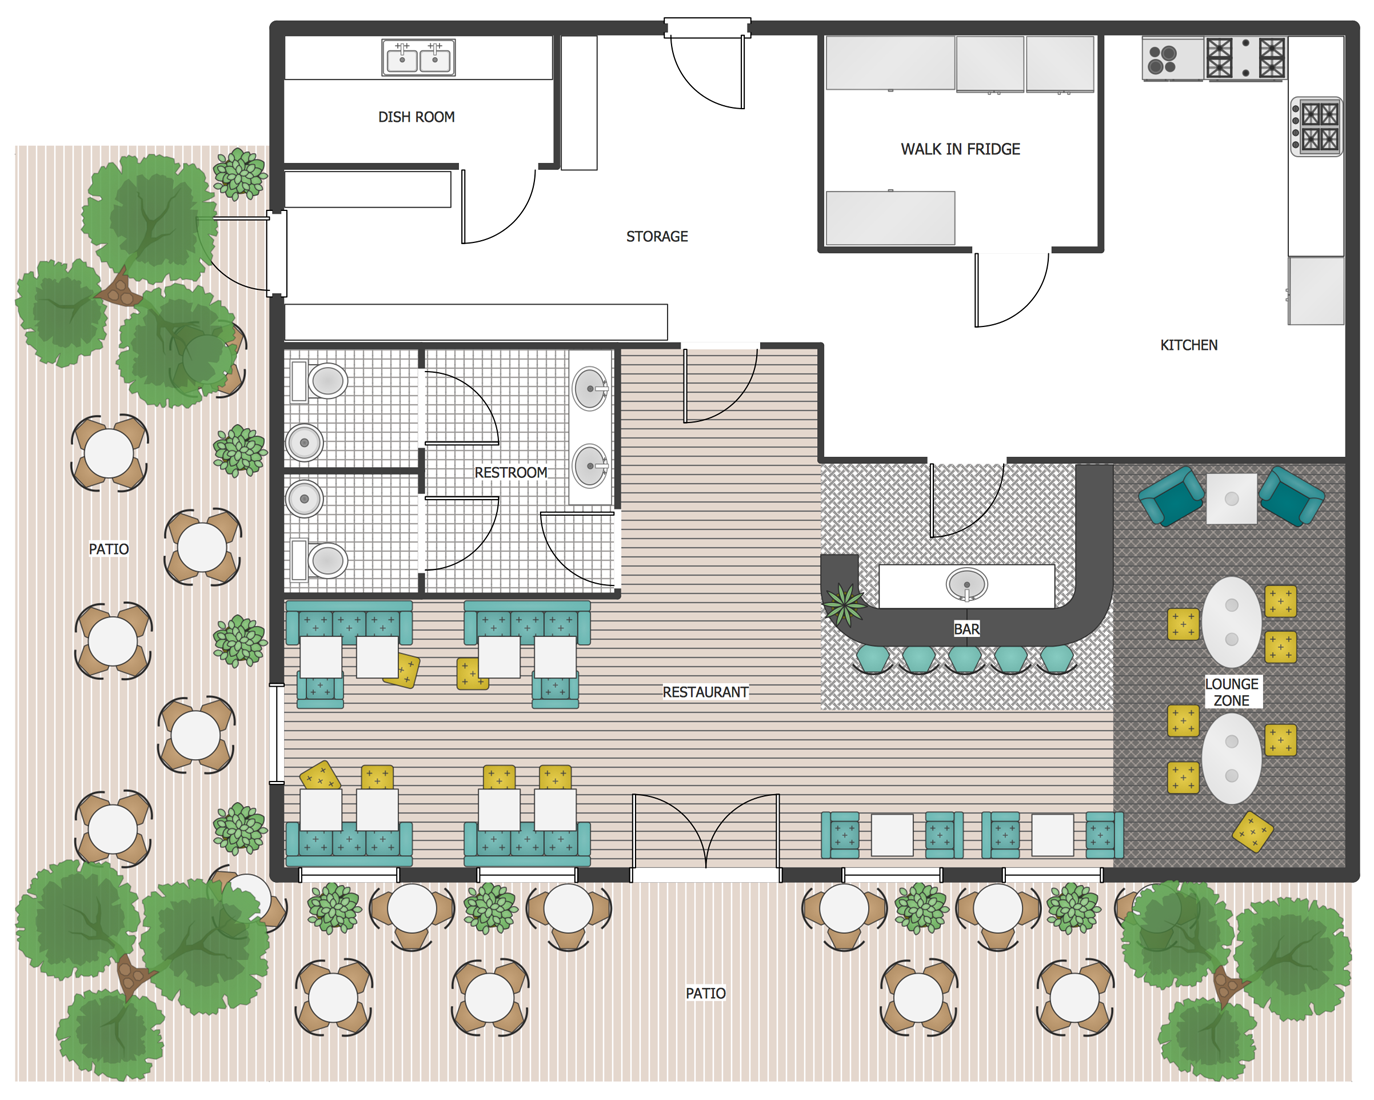 Creating Floor Plans Cafe And Restaurant Floor Plan Solution Conceptdraw Com